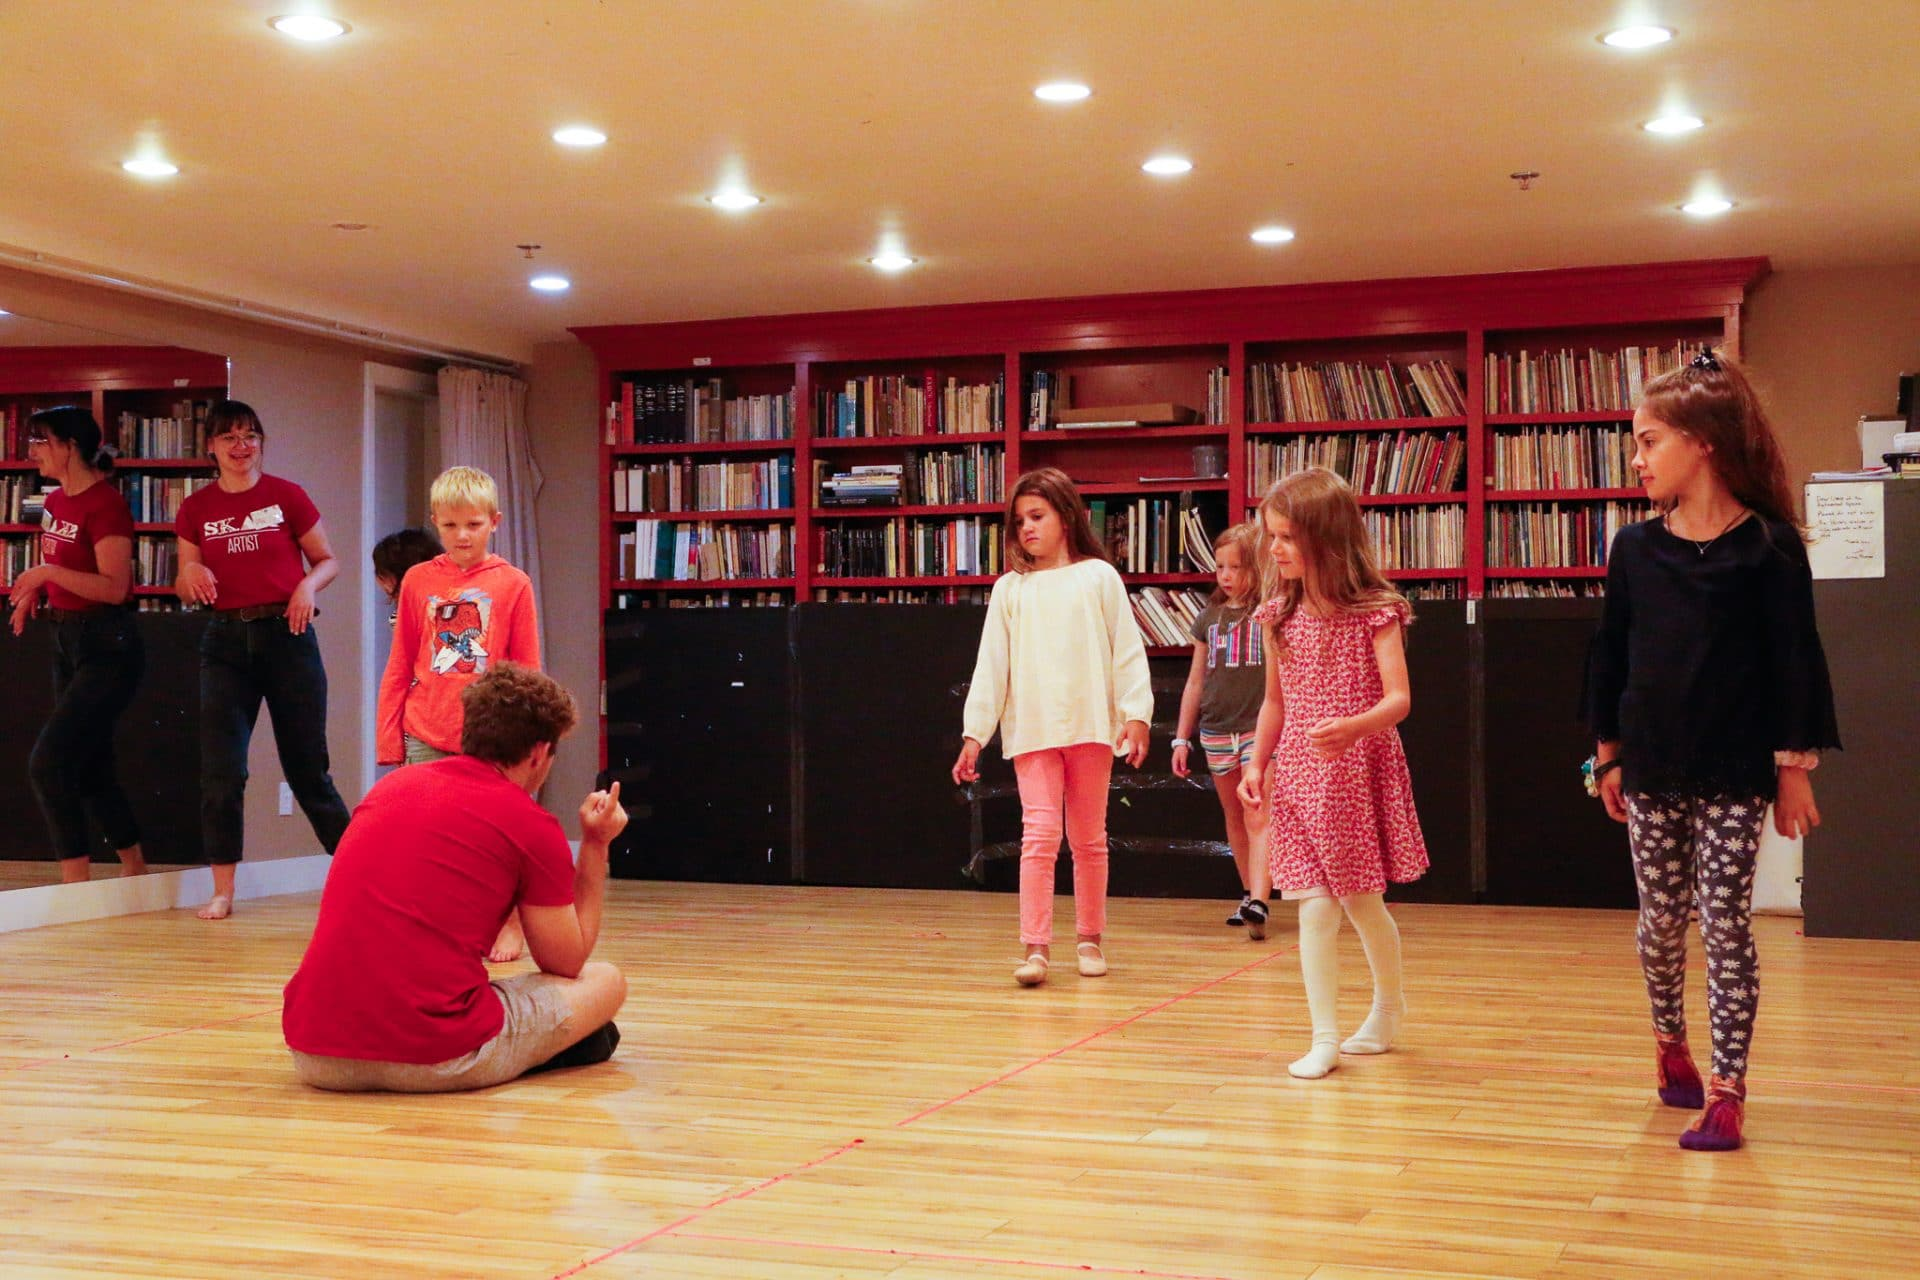 A group of kids sneak past their teacher in a studio room, as part of a game.